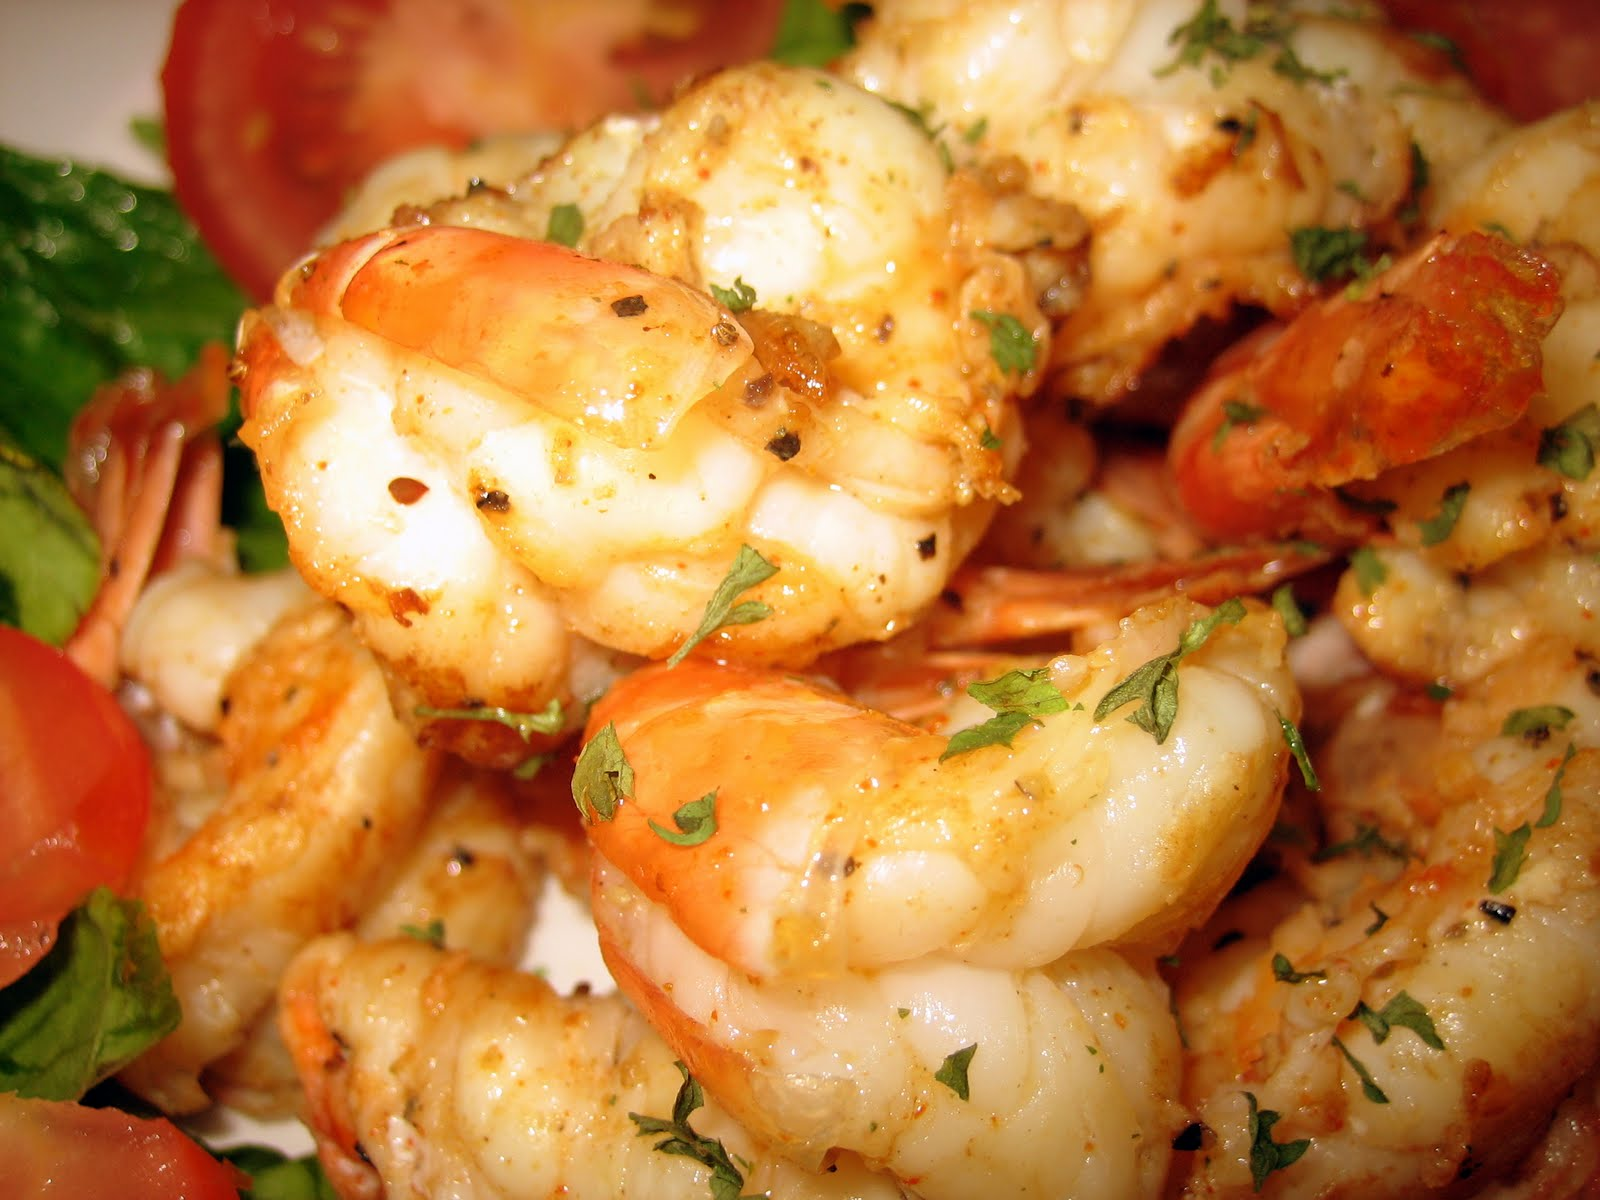 ... shrimp are amazing and so easy to make. Serve these spicy shrimp